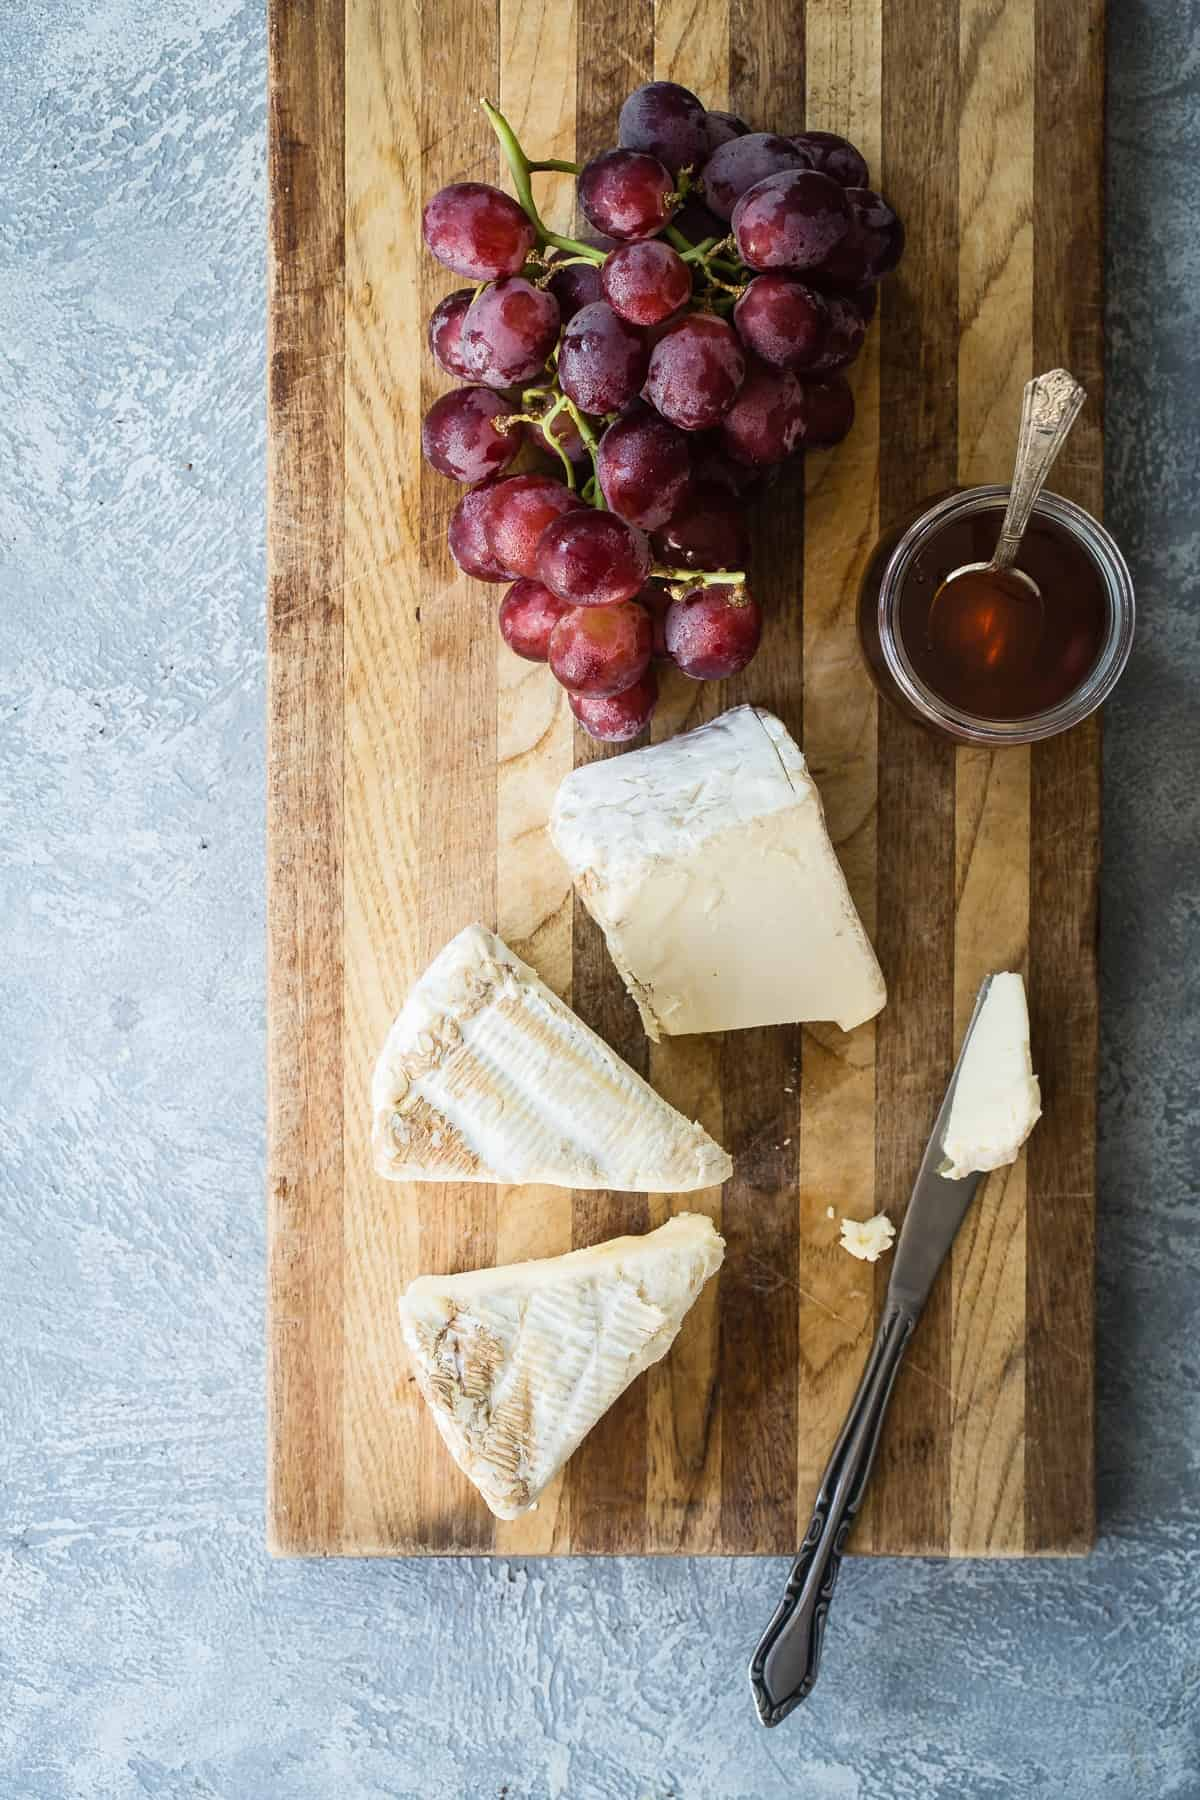 wedges of triple cream brie for a cheese board